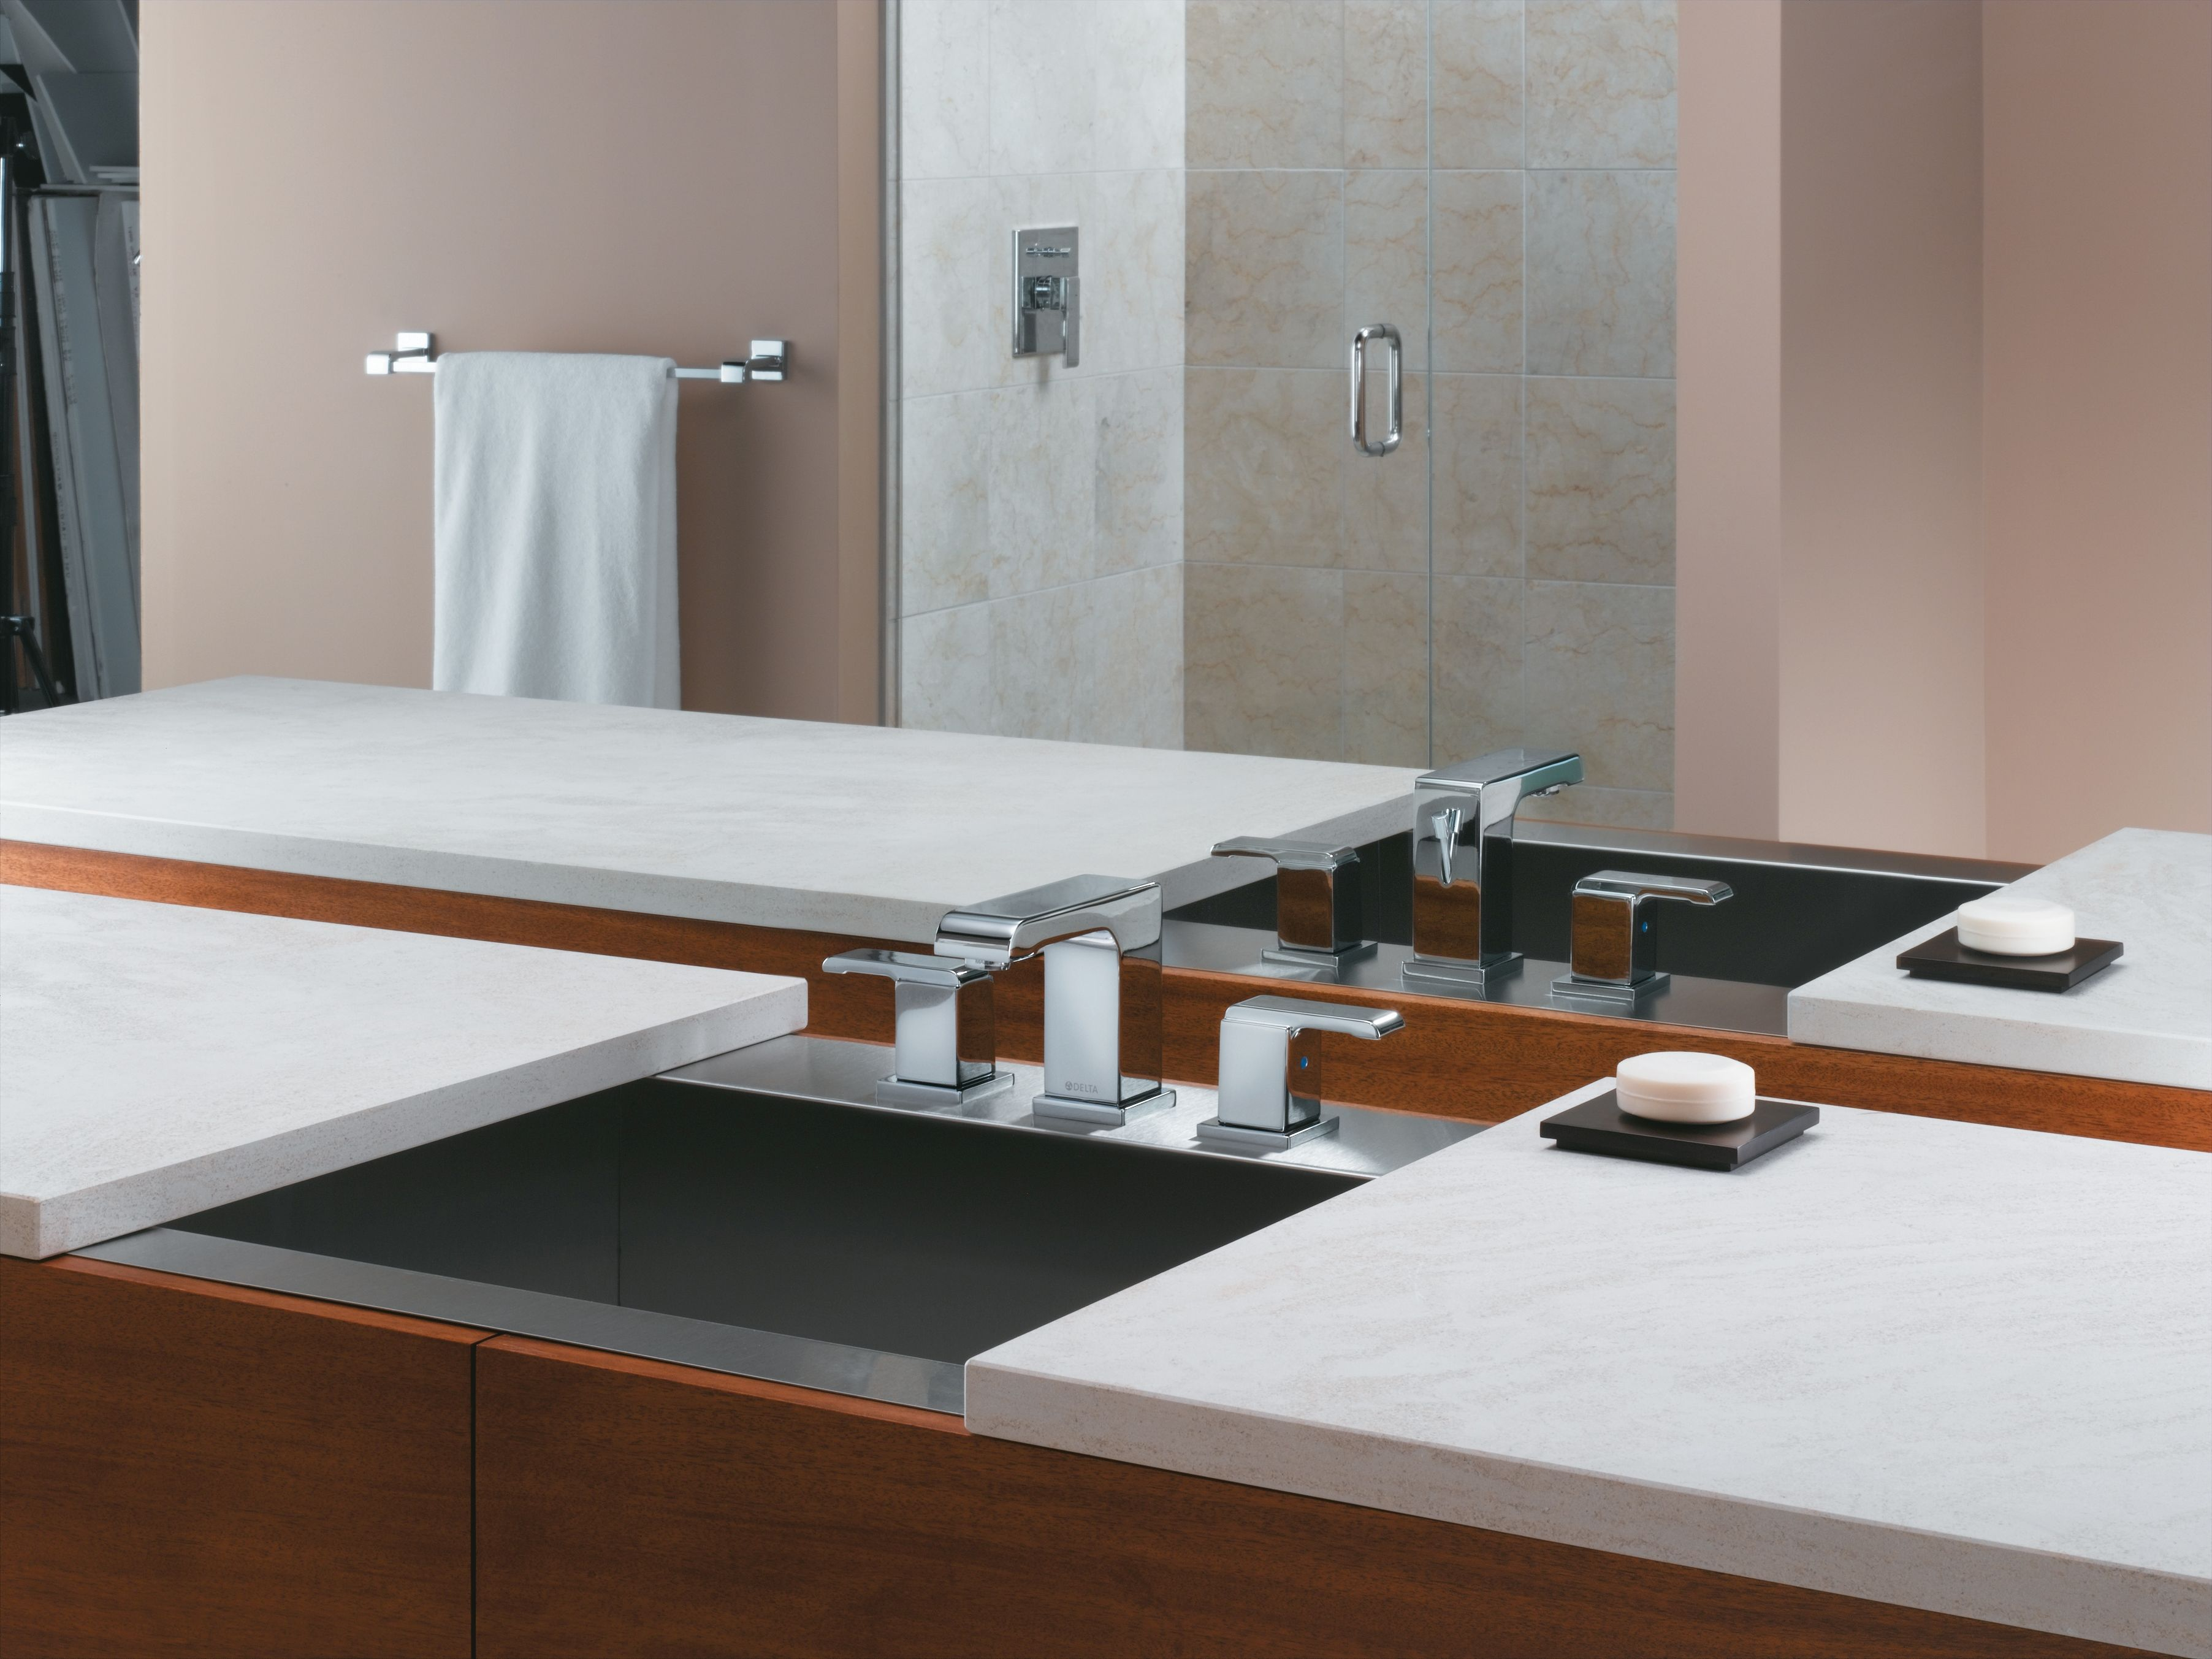 Pop Up Drain Embly Includes Lifetime Delta 3586lf Ssmpu Brilliance Stainless Arzo Widespread Bathroom